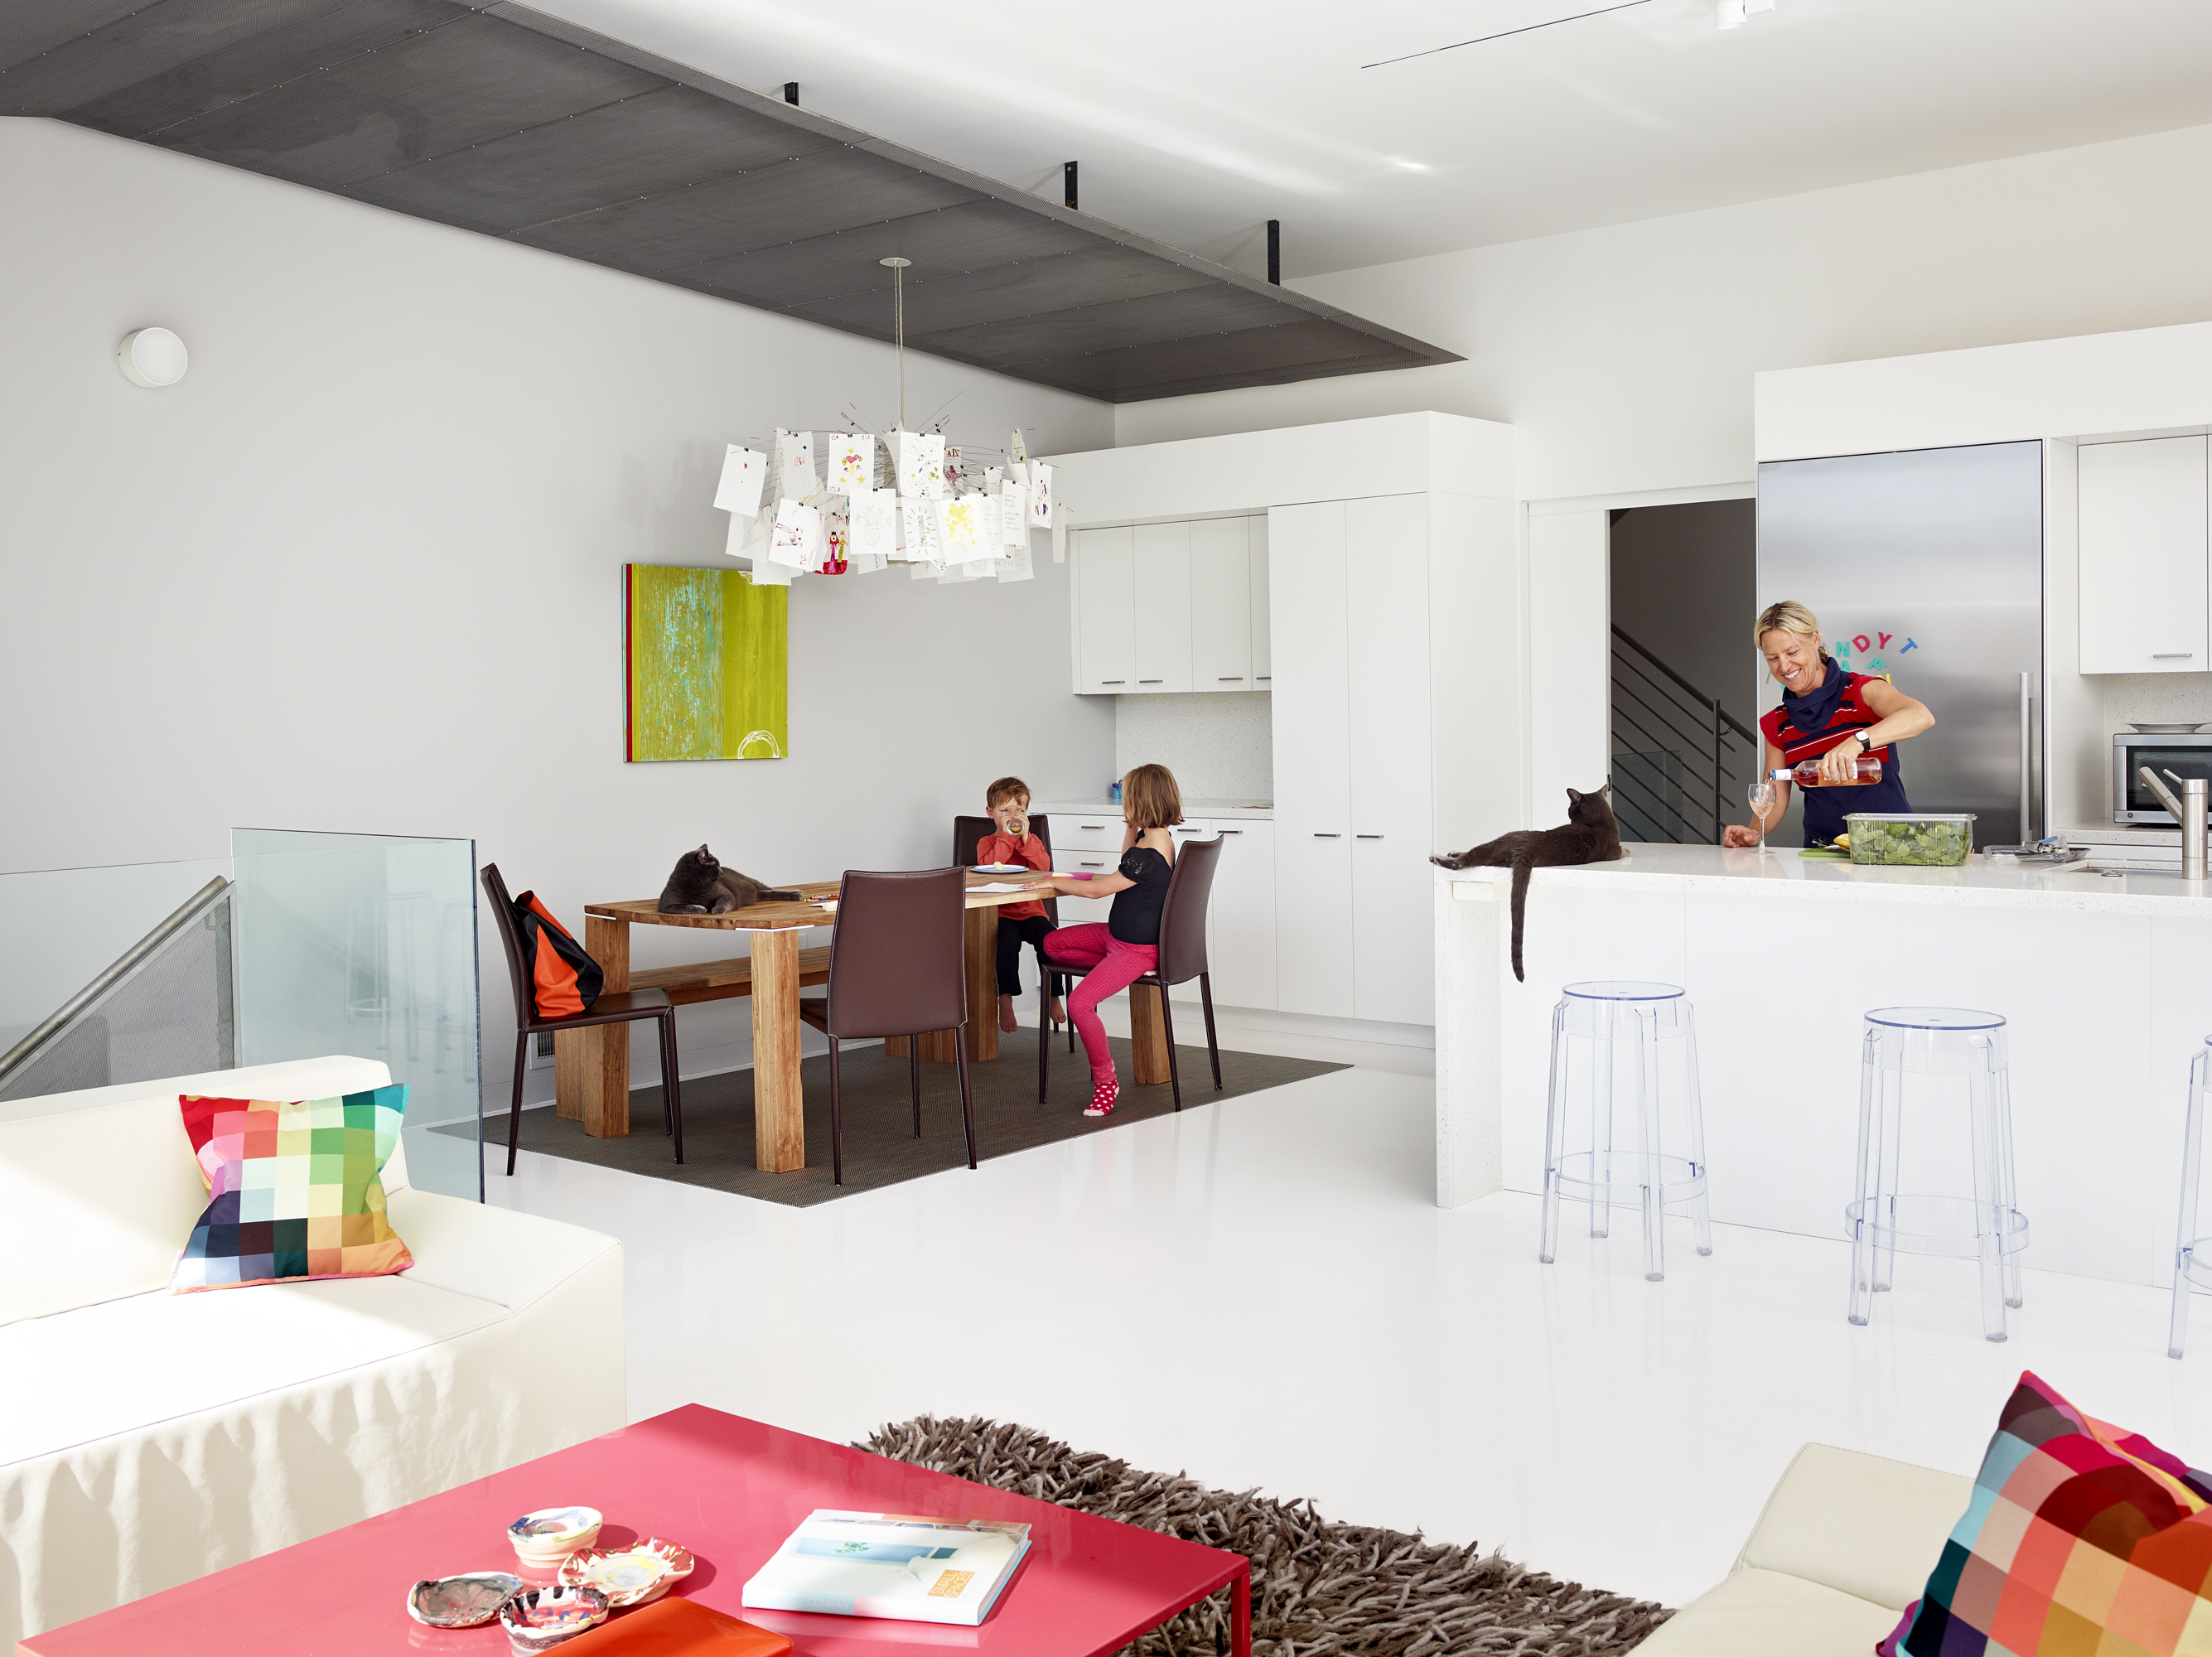 The upper floor as seen from living room space features open design kitchen with white countertops and cabinetry, with transparent plastic bar stool seating at island.